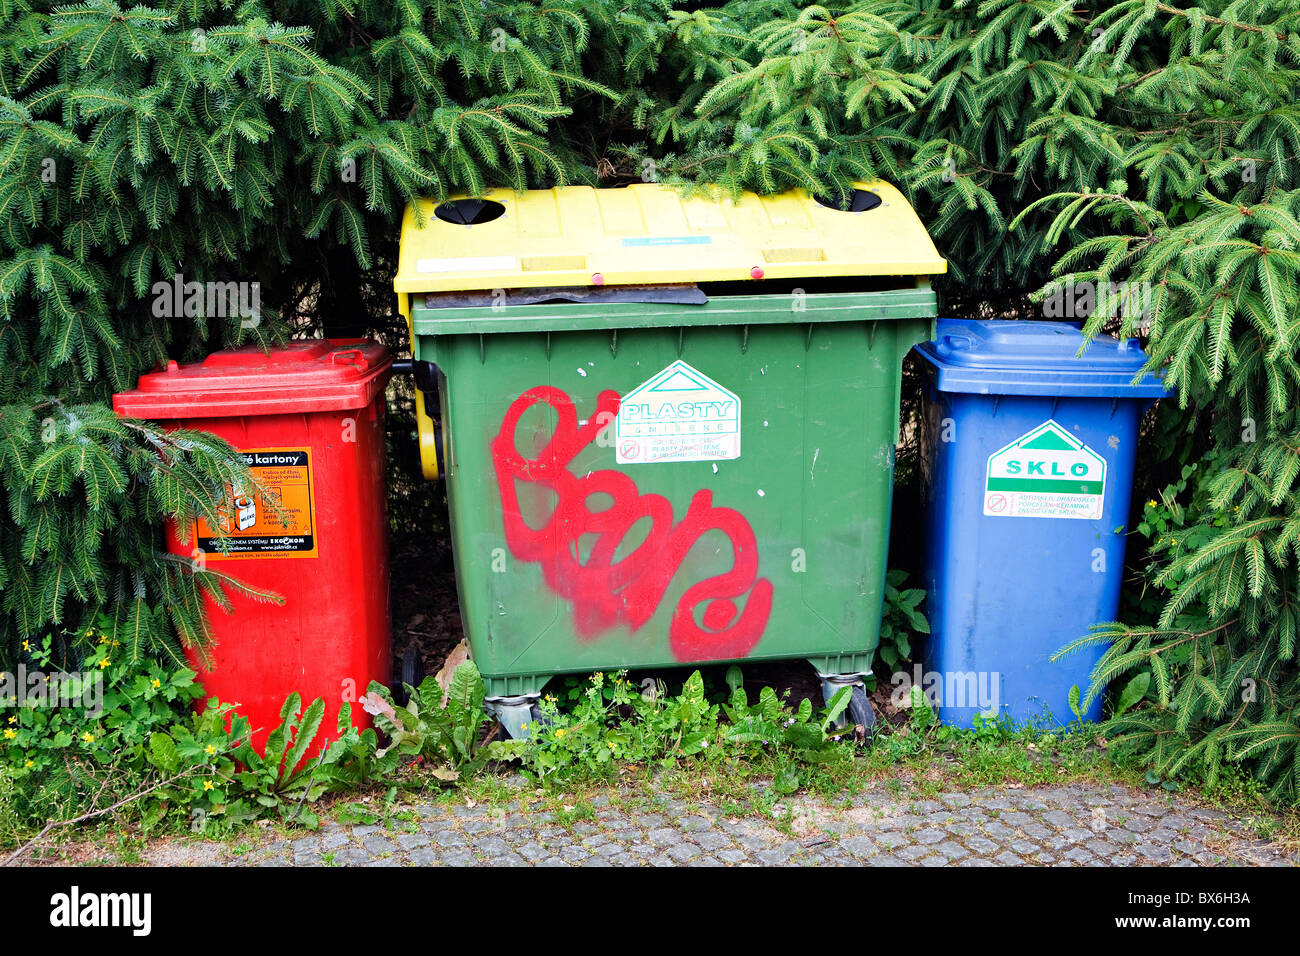 Waste management containers for plastic, glass, paper in Velke Losiny, Czech Republic. (CTK Photo/Martin Sterba) Stock Photo